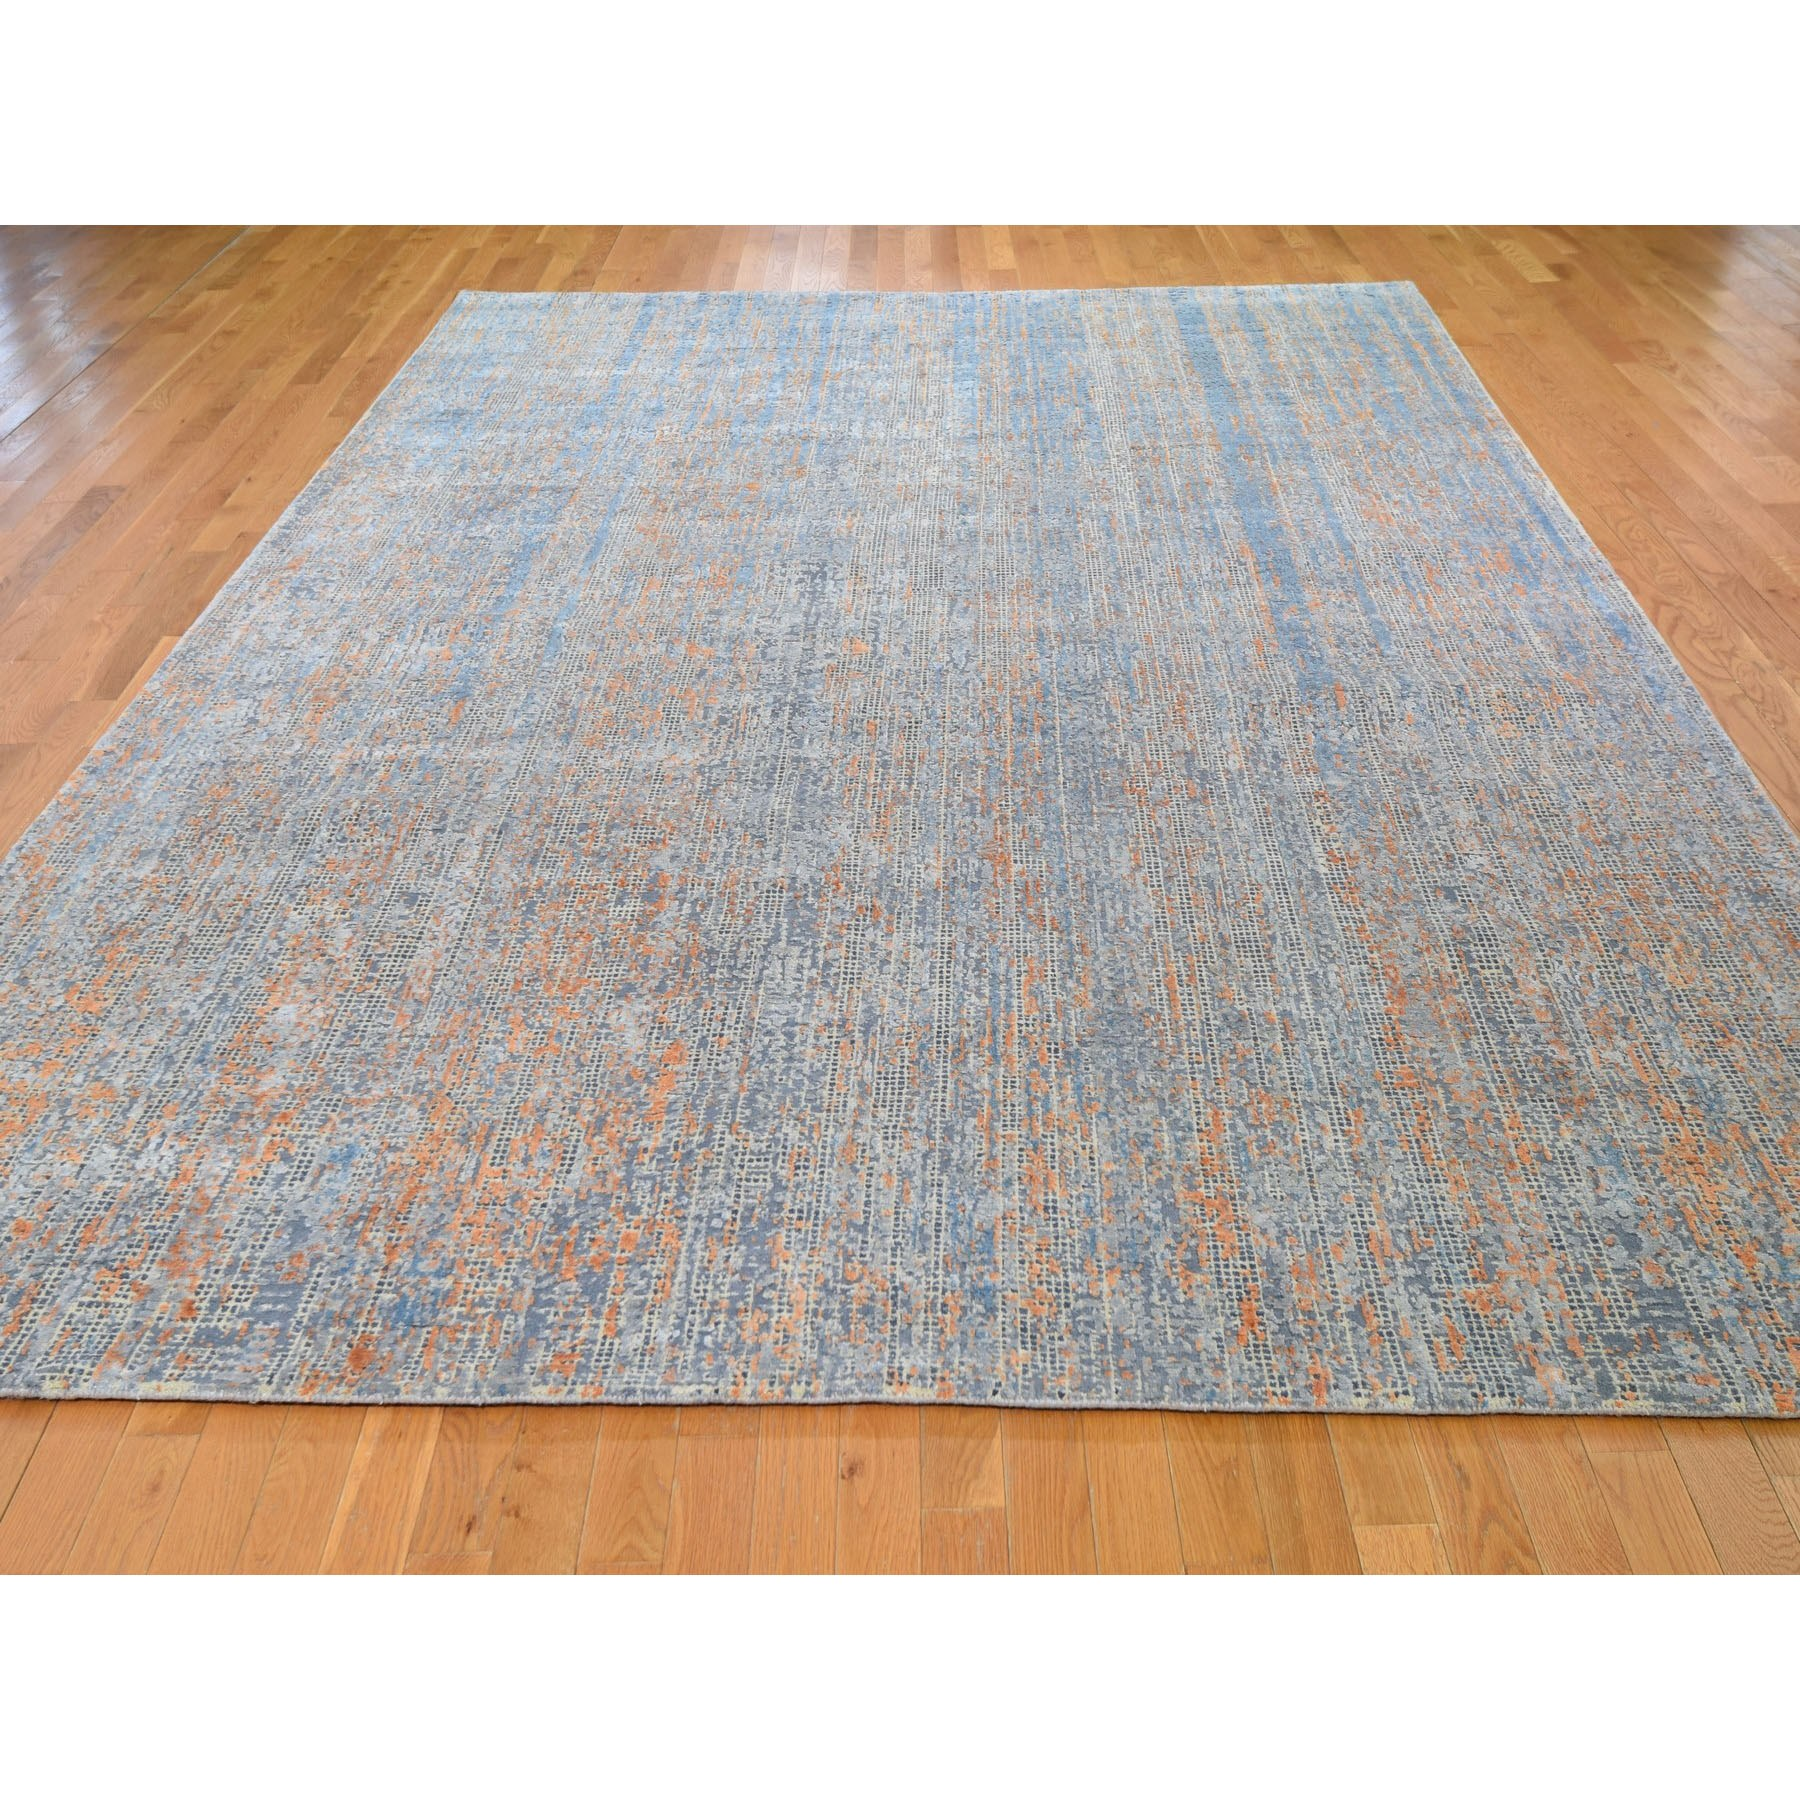 "8'10""x12'2"" Water Dripping Design Silk With Textured Wool Hand Woven Oriental Rug"